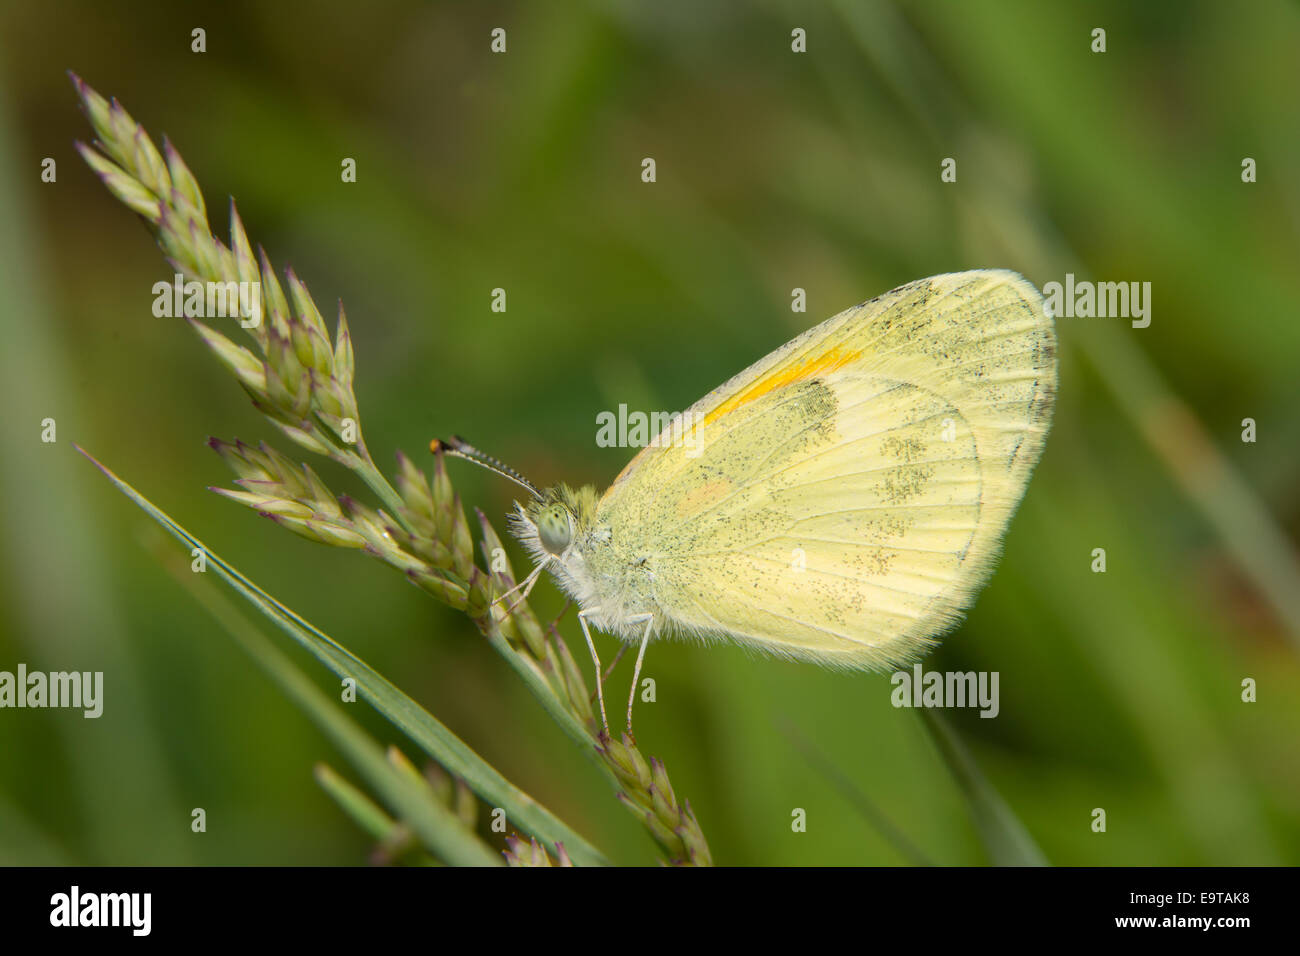 Dainty Sulphur butterfly, the smallest North American pierid, resting on grass - Stock Image